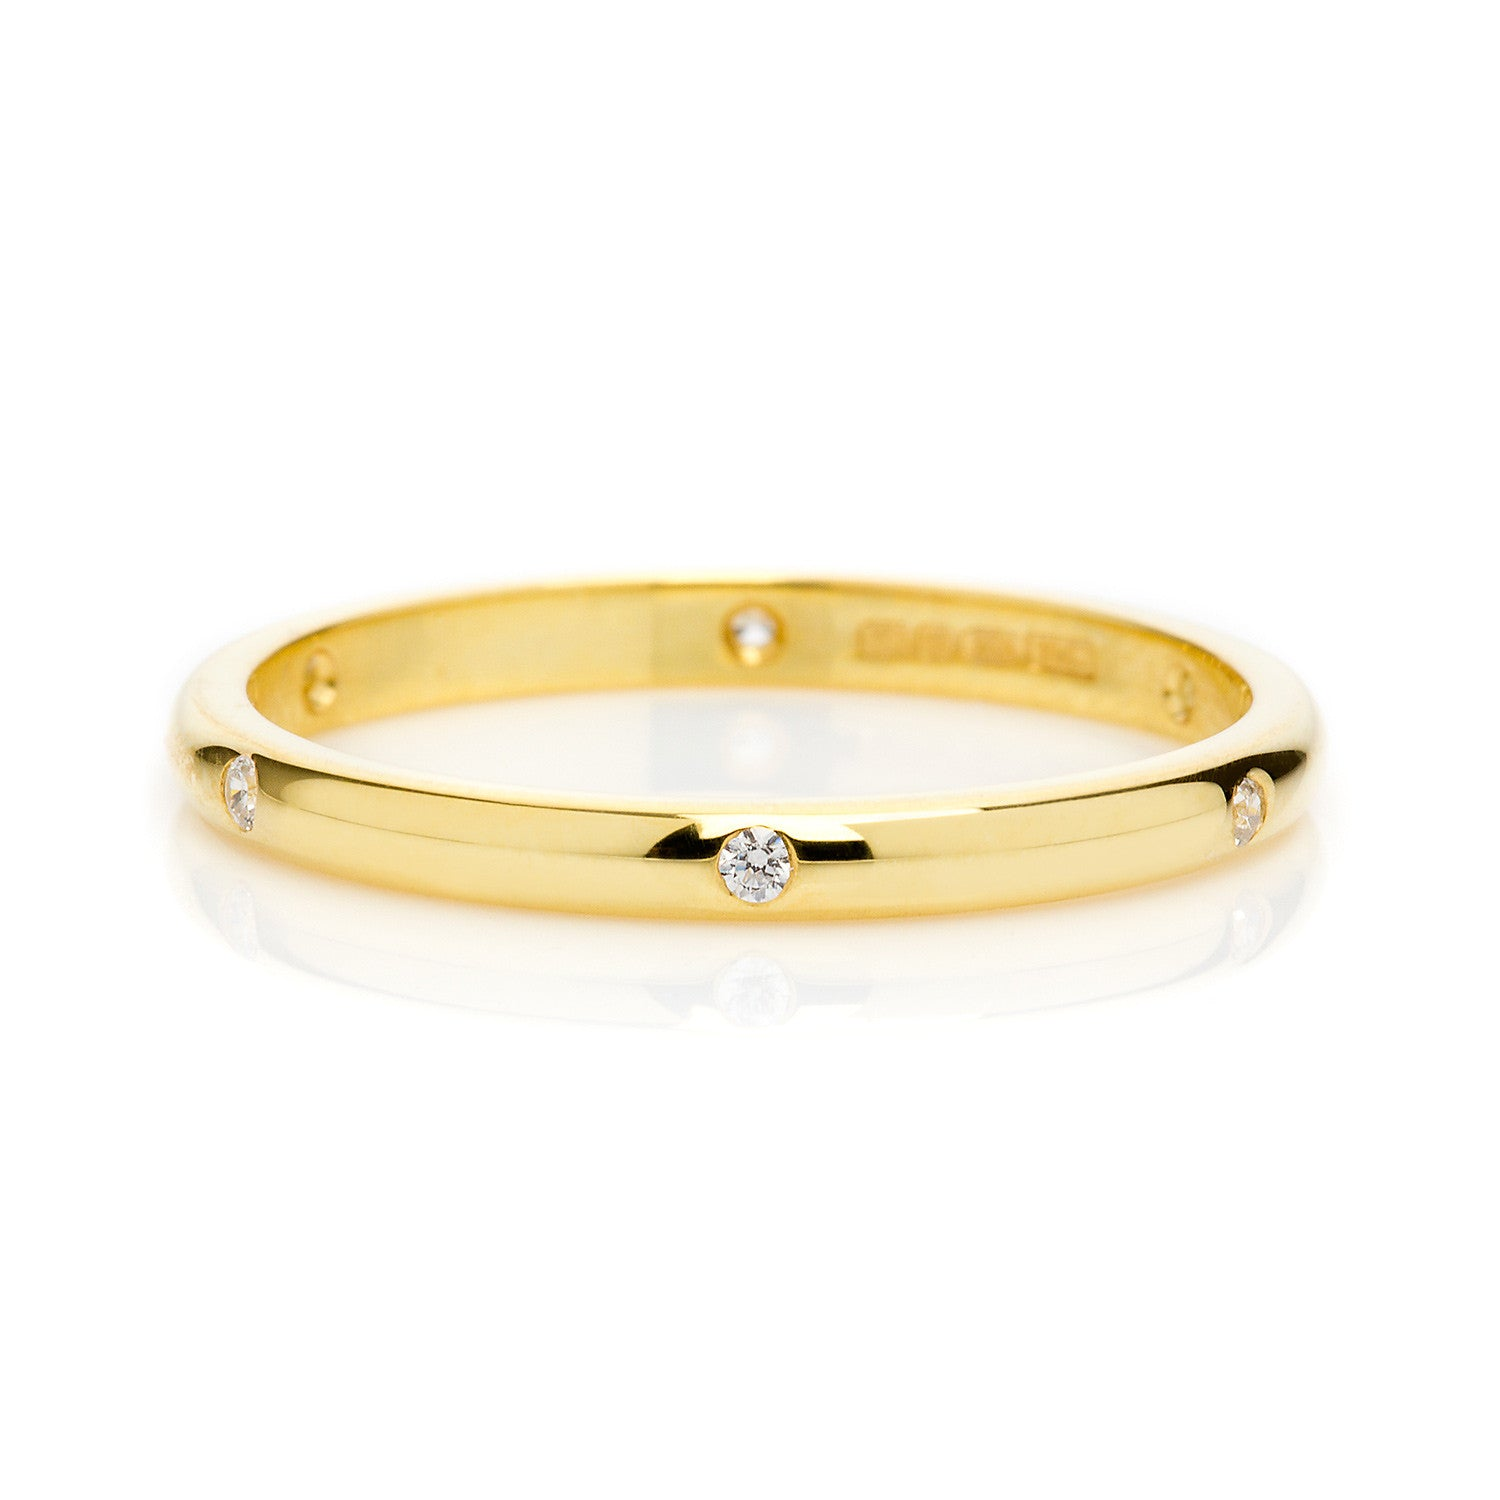 D Shape Beloved Diamond Ethical Gold Wedding Ring 2mm - Arabel Lebrusan